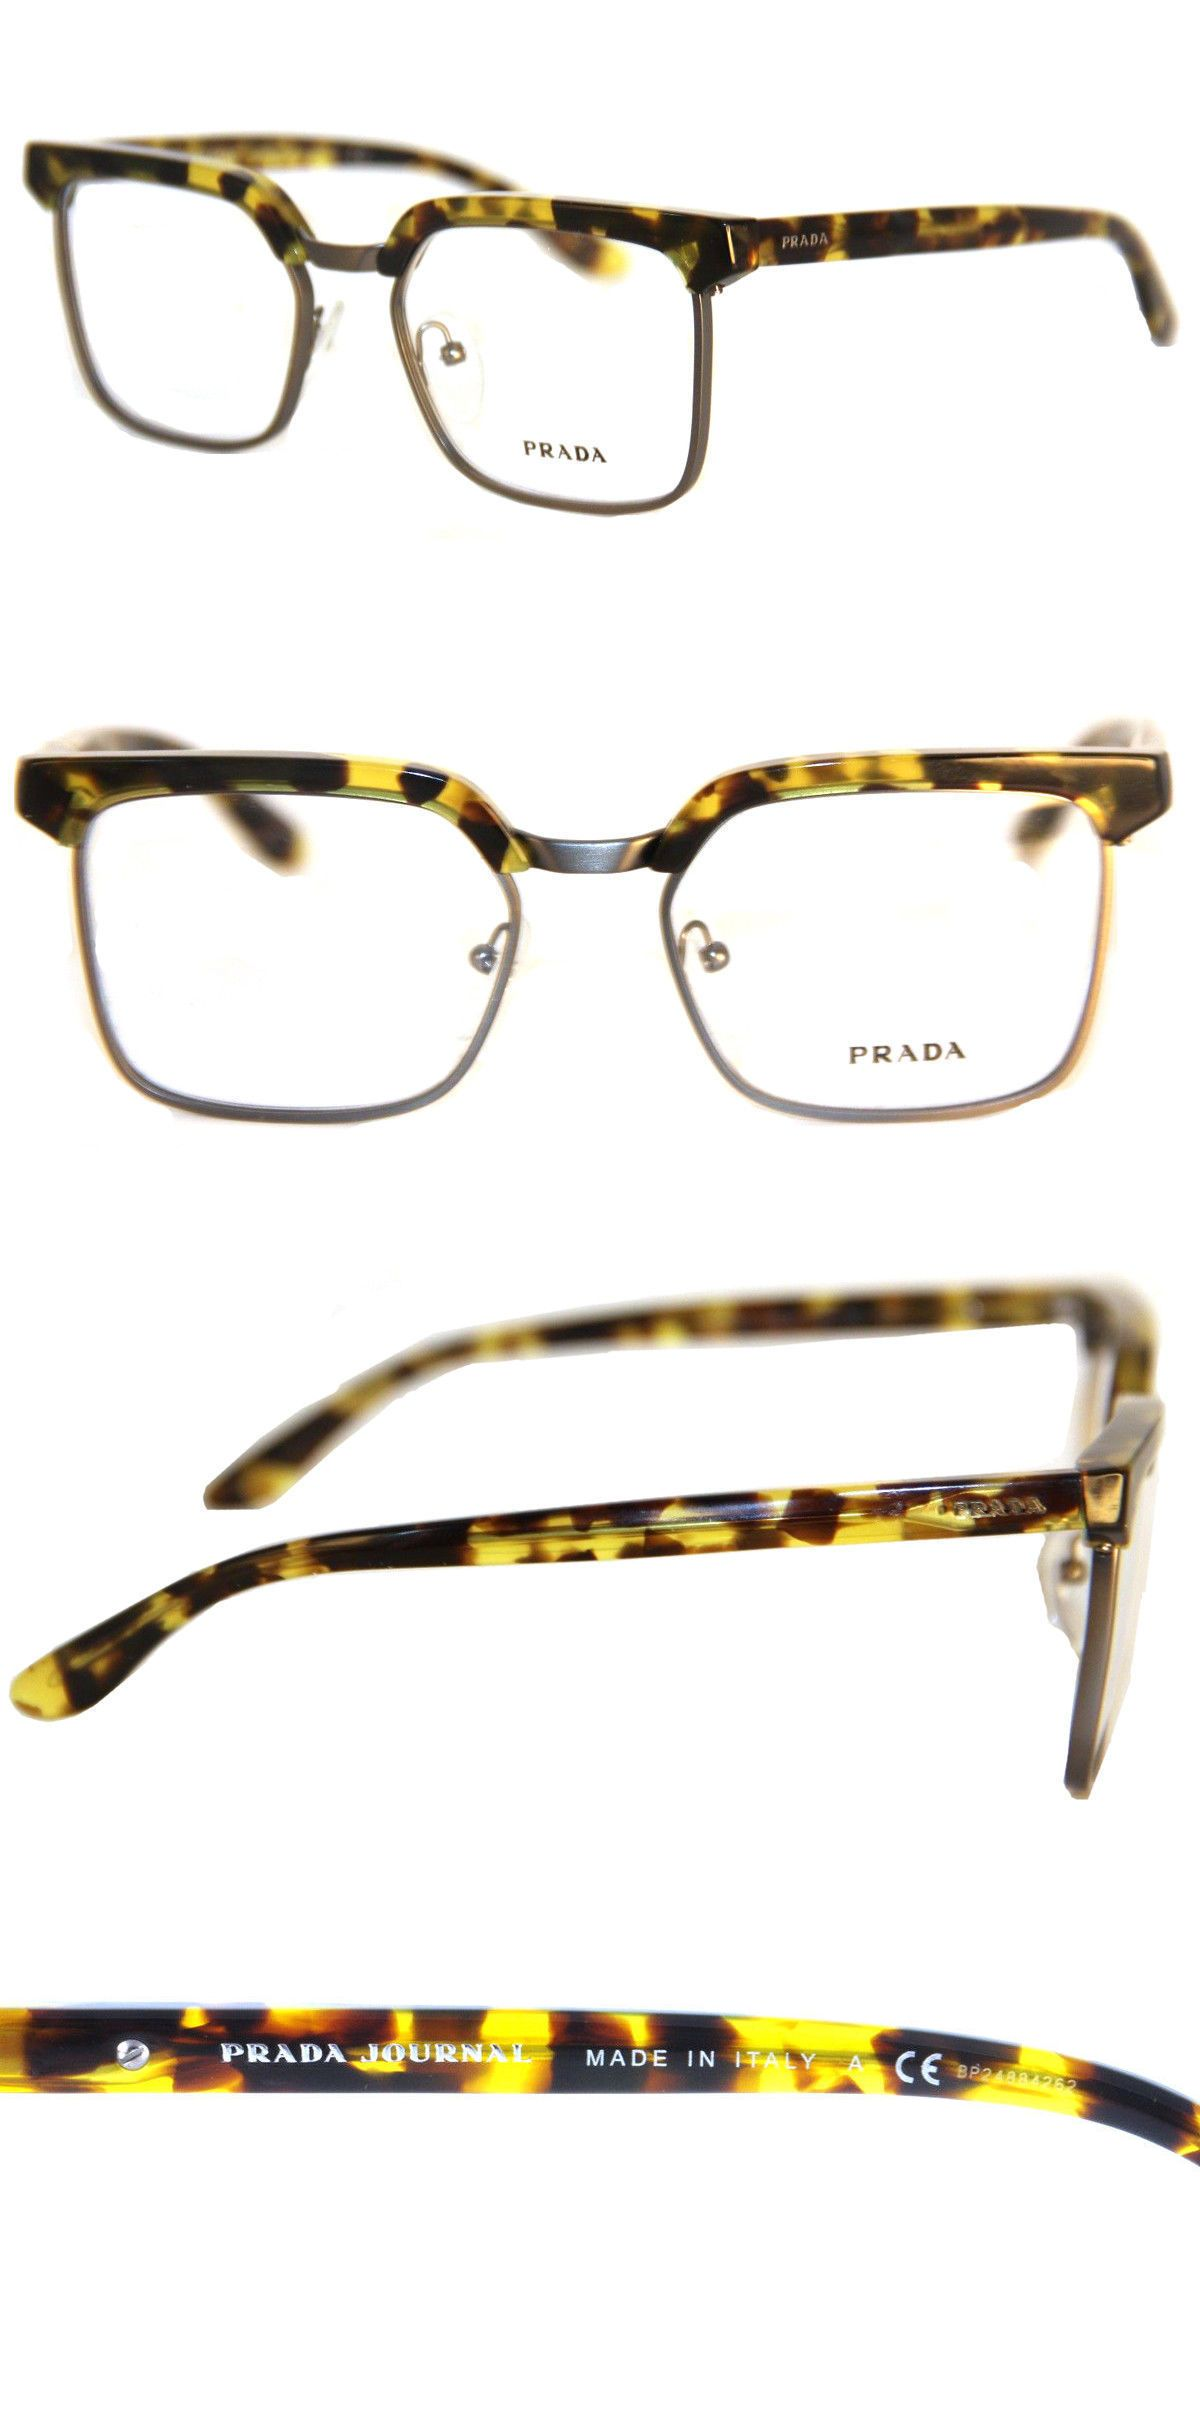 4cd4b2f1a75 Eyeglass Frames 180957  Prada Vpr 15S Optical Frame Authentic Unisex Havana  Ubl-101 Eyeglasses